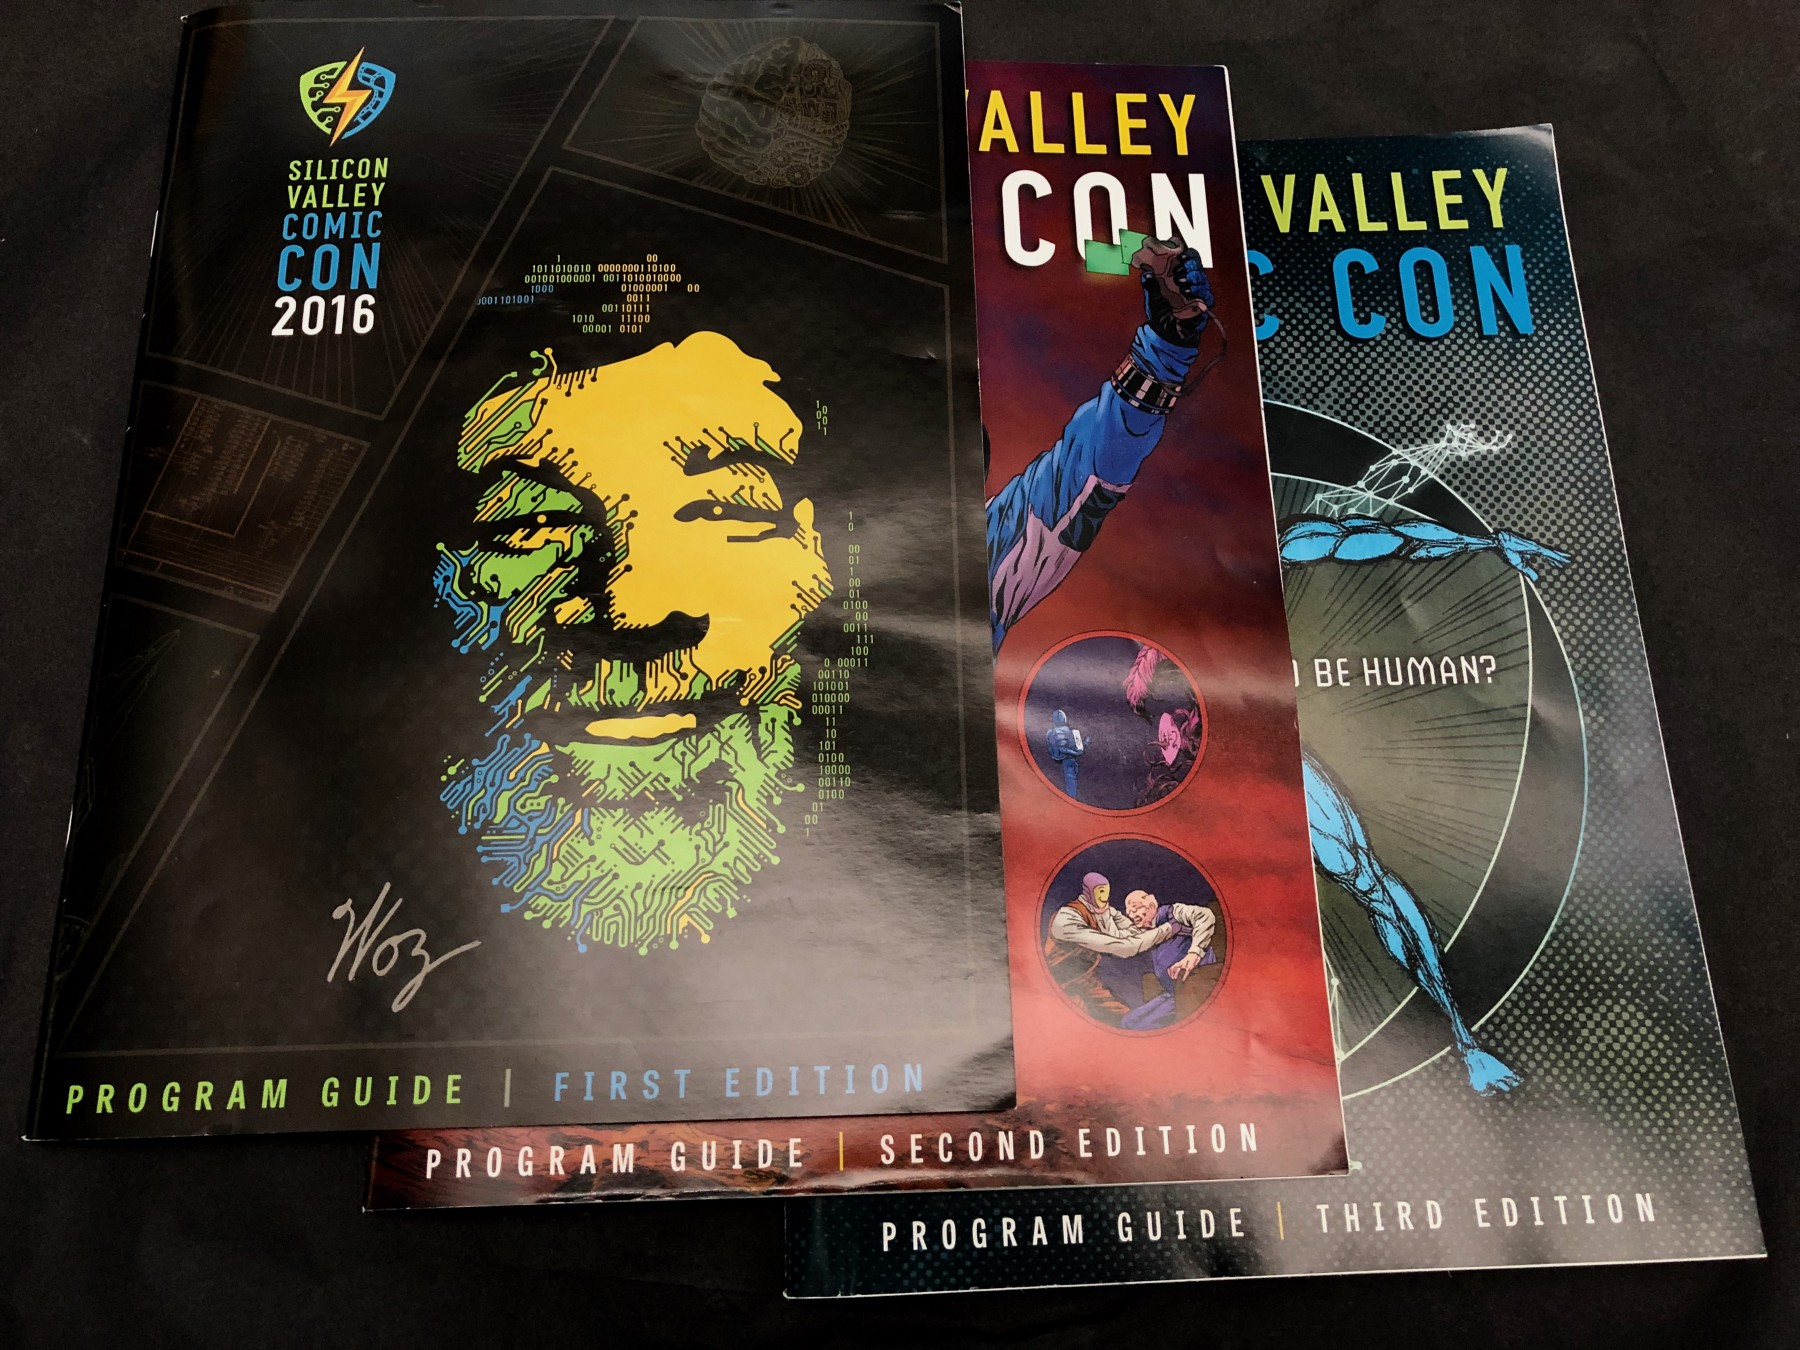 svcc program guide.jpeg